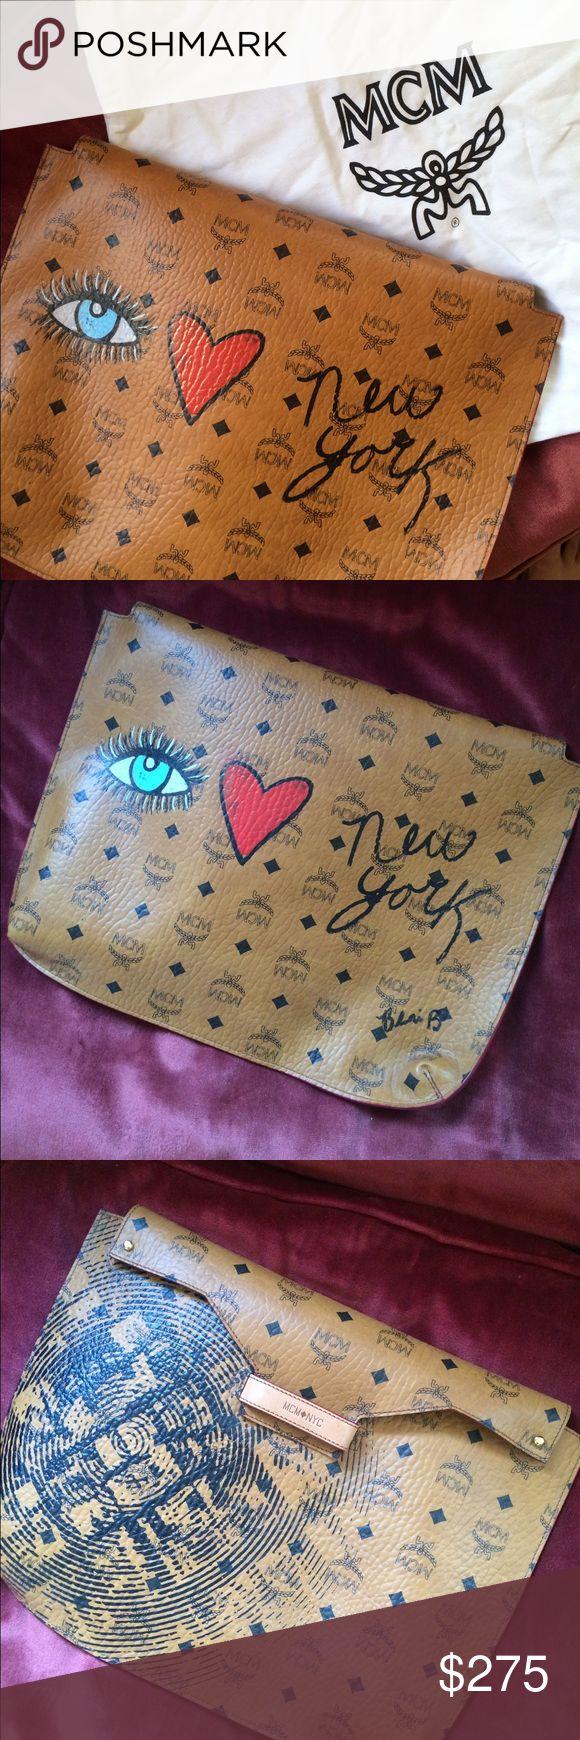 Custom MCM Clutch Custom clutch or laptop case by MCM. Hand painted at a Vogue event by fashion illustrator Blair Breitsenstein (@blairz). Comes with the original dust bag. MCM Bags Clutches & Wristlets